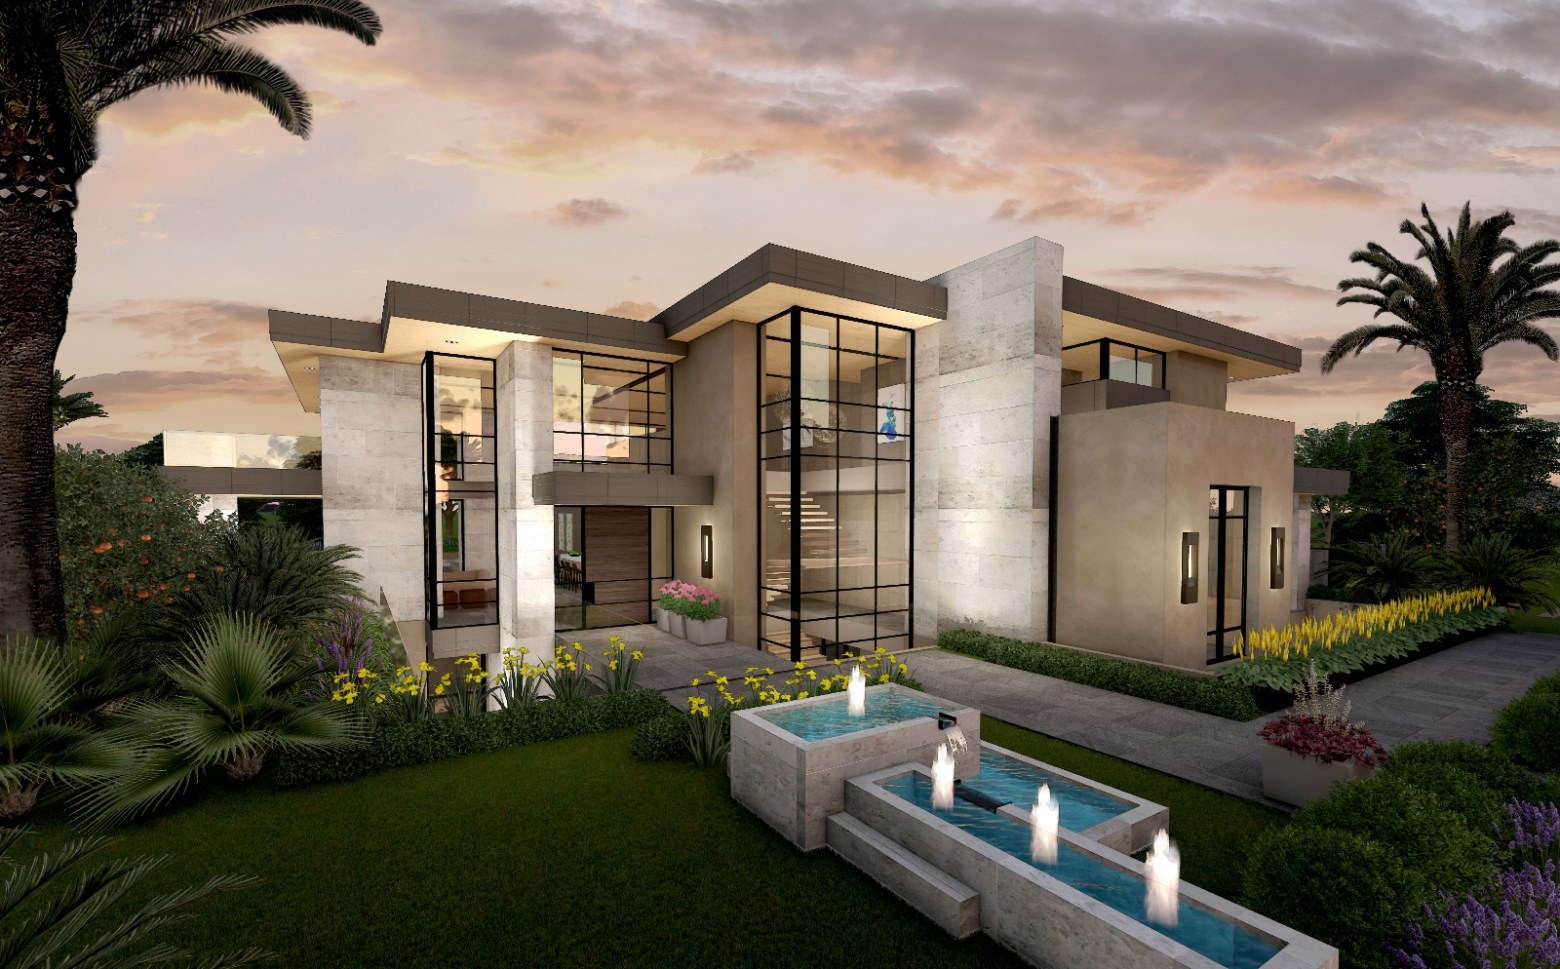 Estate luxury homes by The Ritz-Carlton Paradise Valley